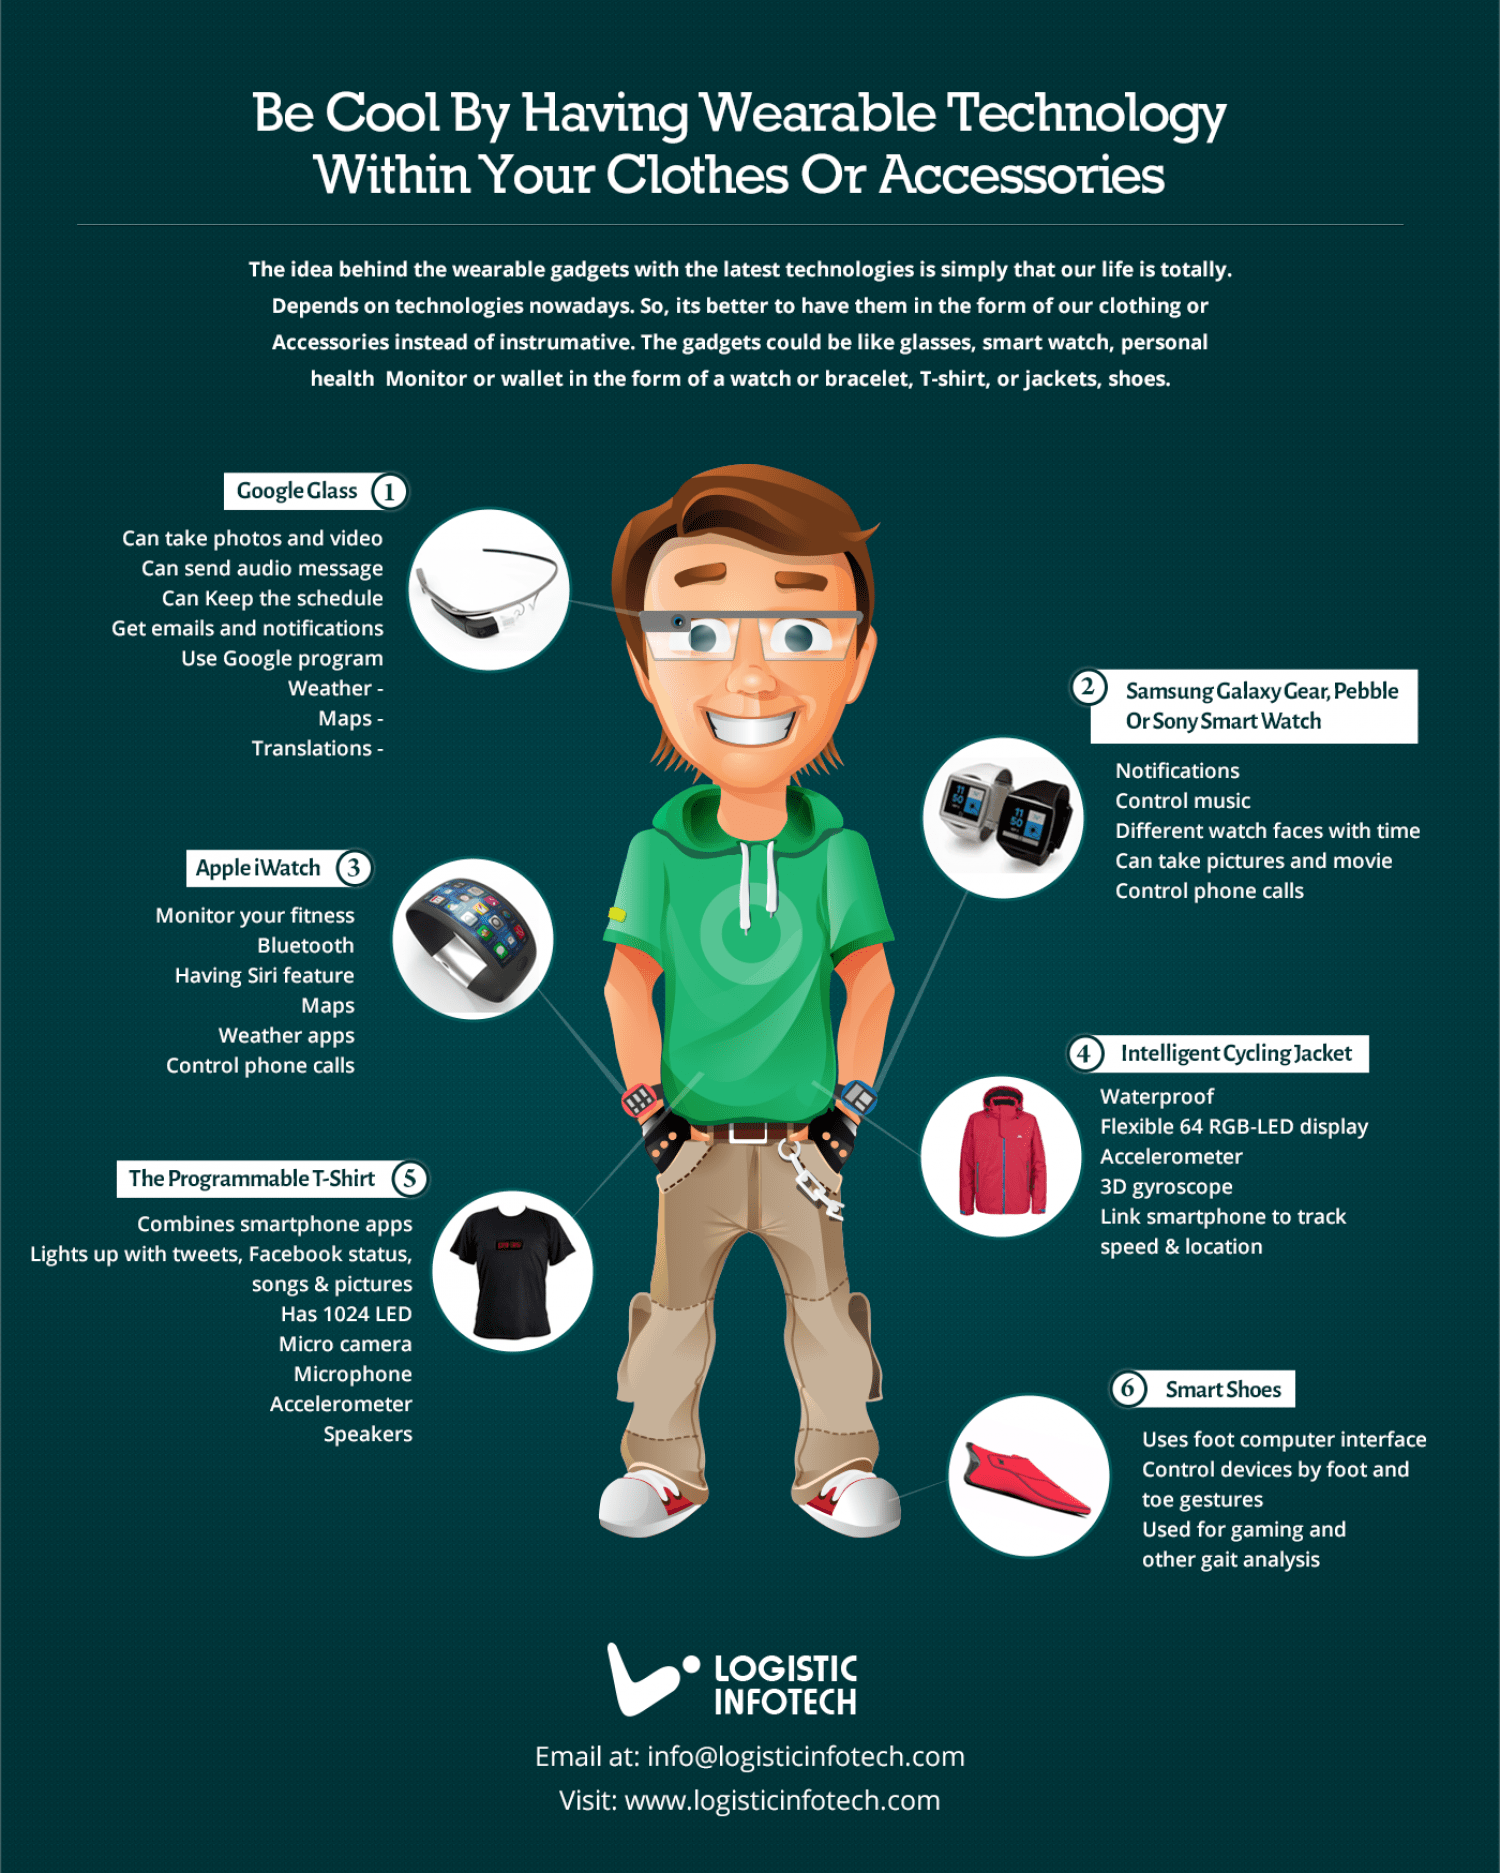 Be Cool By Having Wearable Technology Within Your Clothes